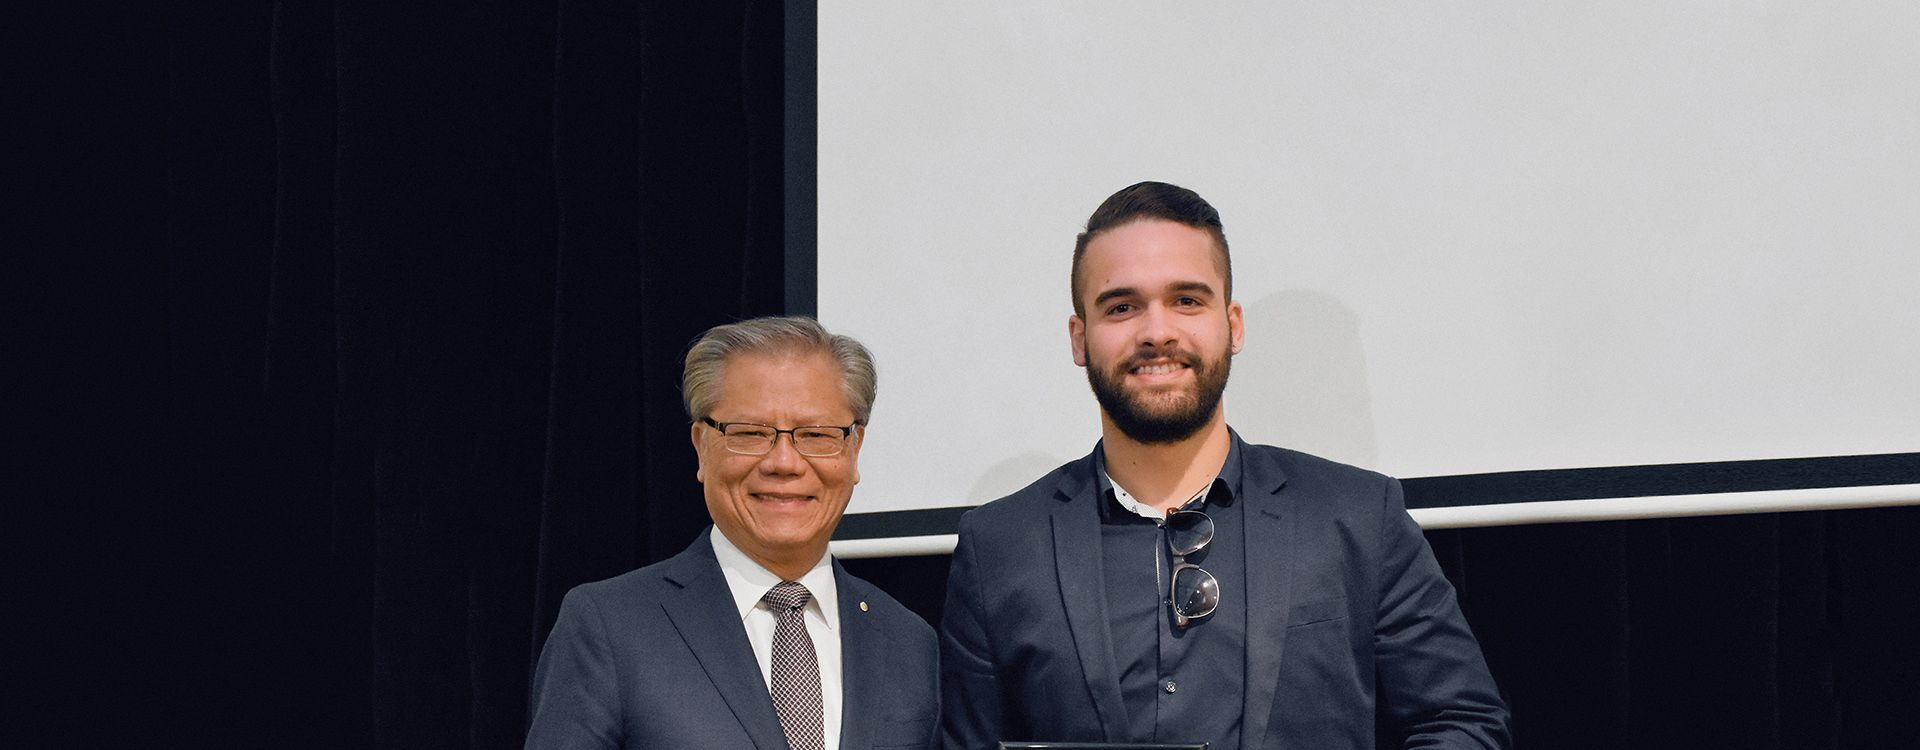 WSP's Jake Berry receives the Inaugural Aboriginal Employee Excellence Award from His Excellency, The Honourable Hieu Van Le AC, Governor  of South Australia